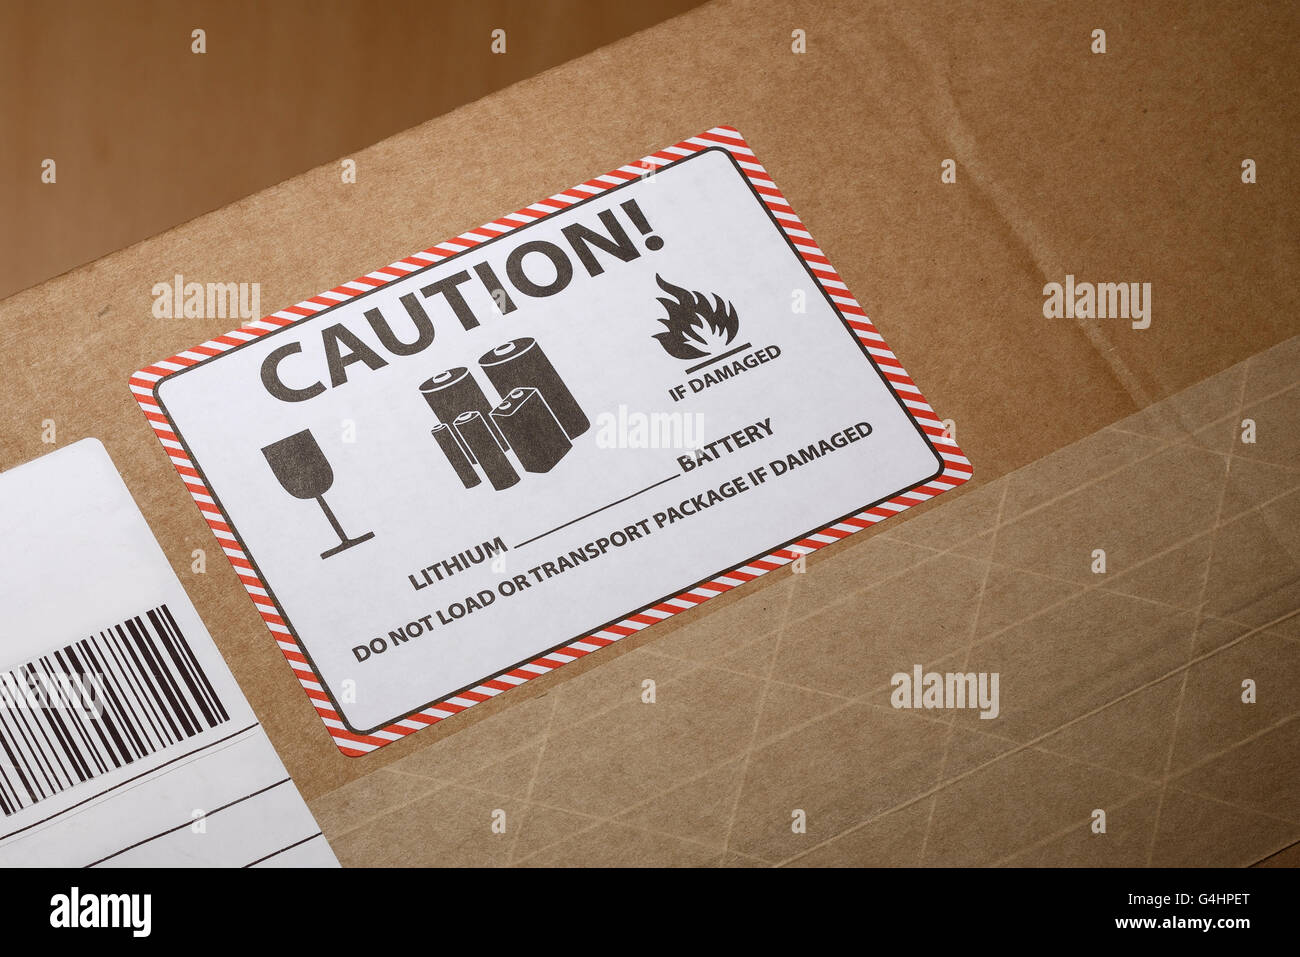 A warning label on a box indicating a lithium battery is inside - Stock Image